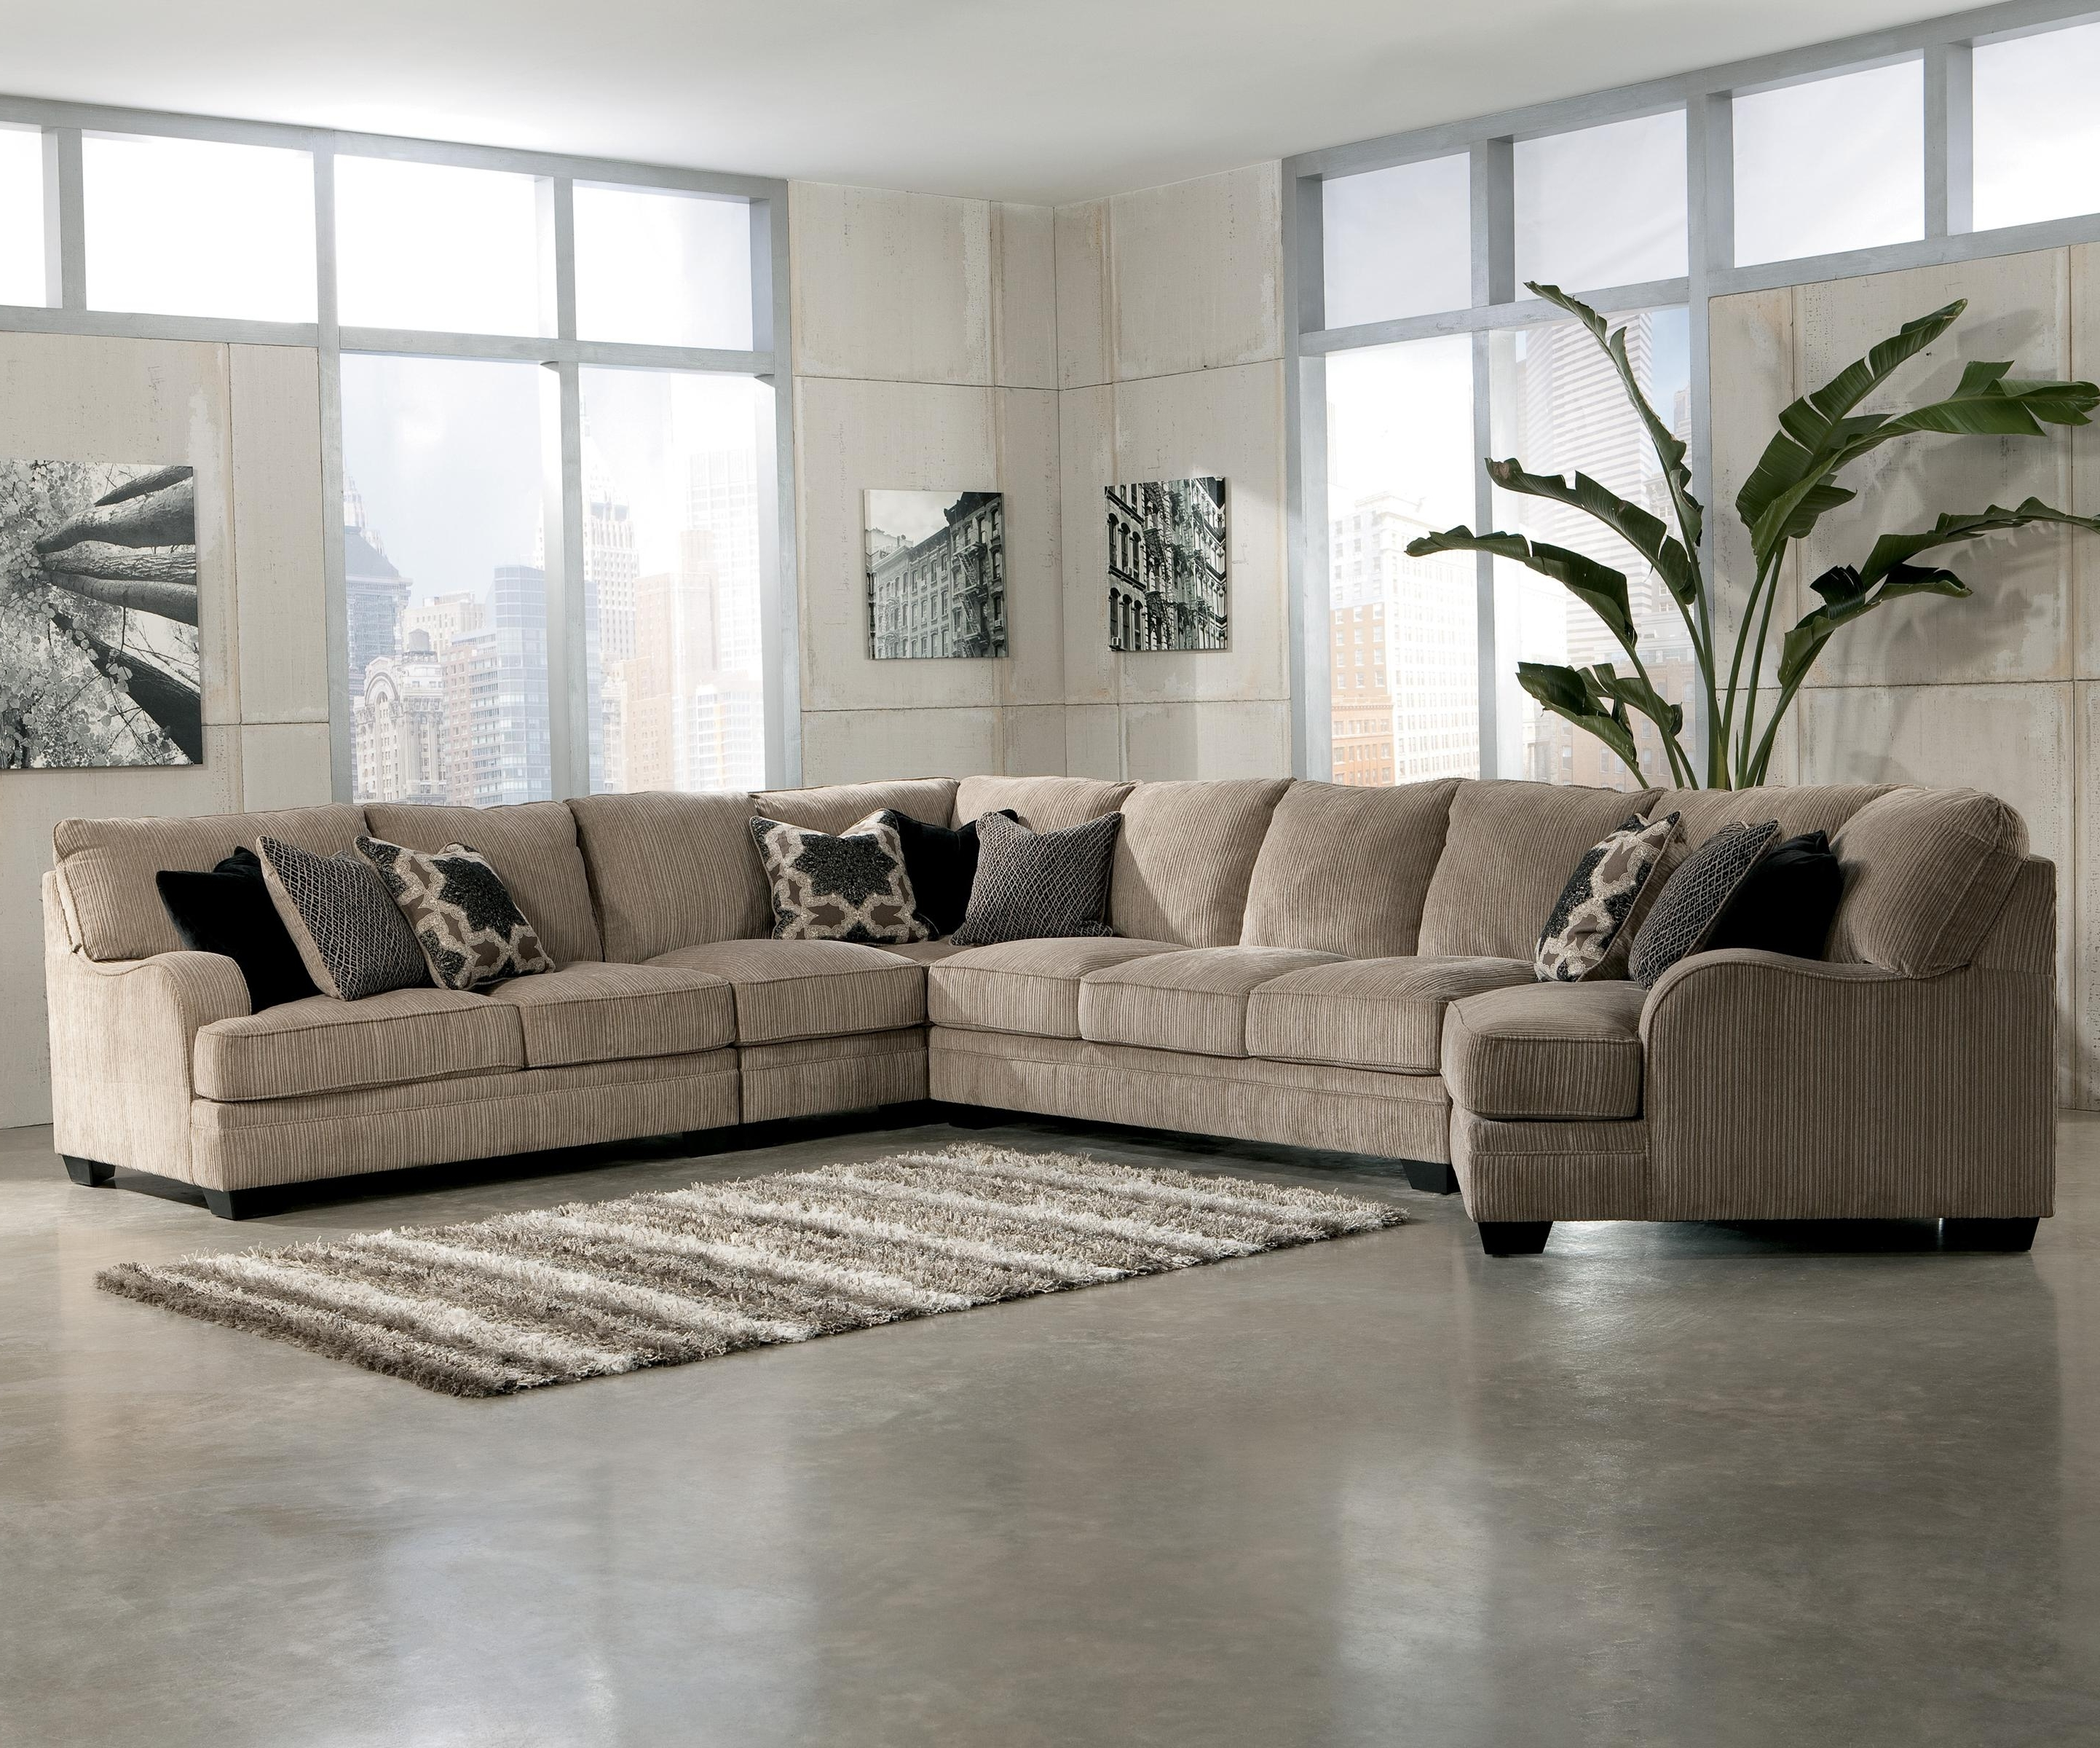 Signature Designashley Katisha – Platinum 5 Piece Sectional For Newest Pittsburgh Sectional Sofas (View 15 of 20)